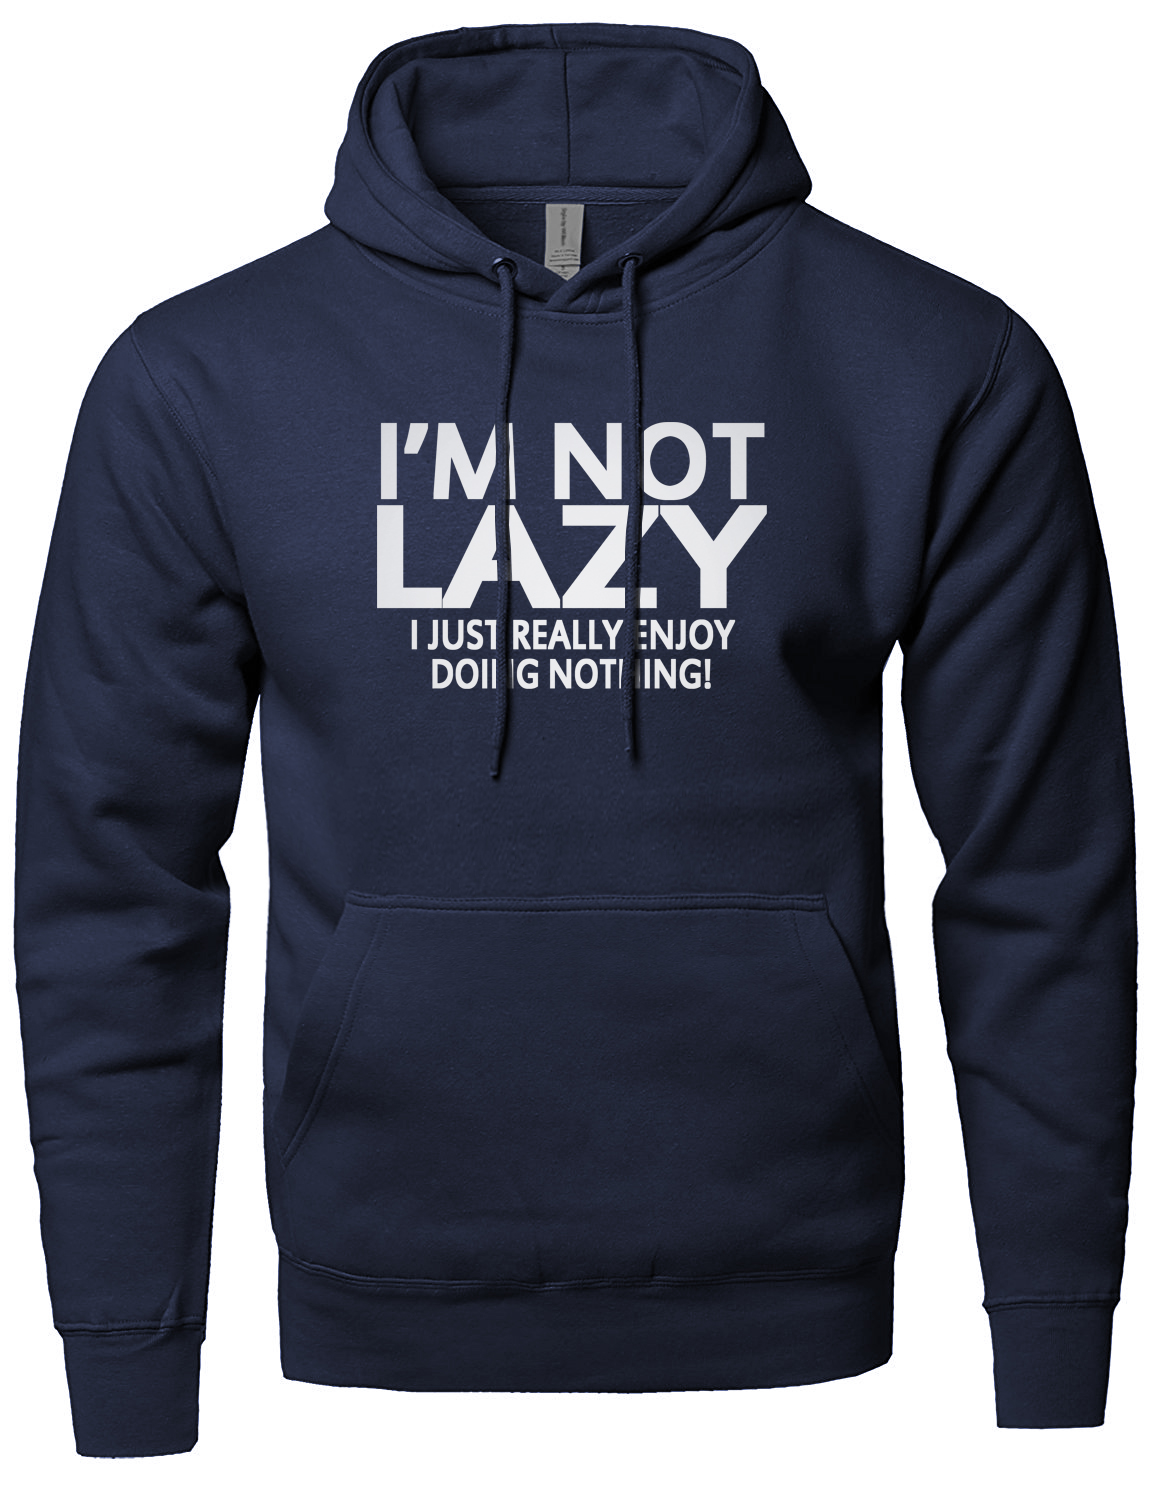 I'M NOT LAZY Letter Printed 2019 Spring Fleece High Quality Hoody Winter Sweatshirt For Men Brand-Clothing Men's Sportswear New